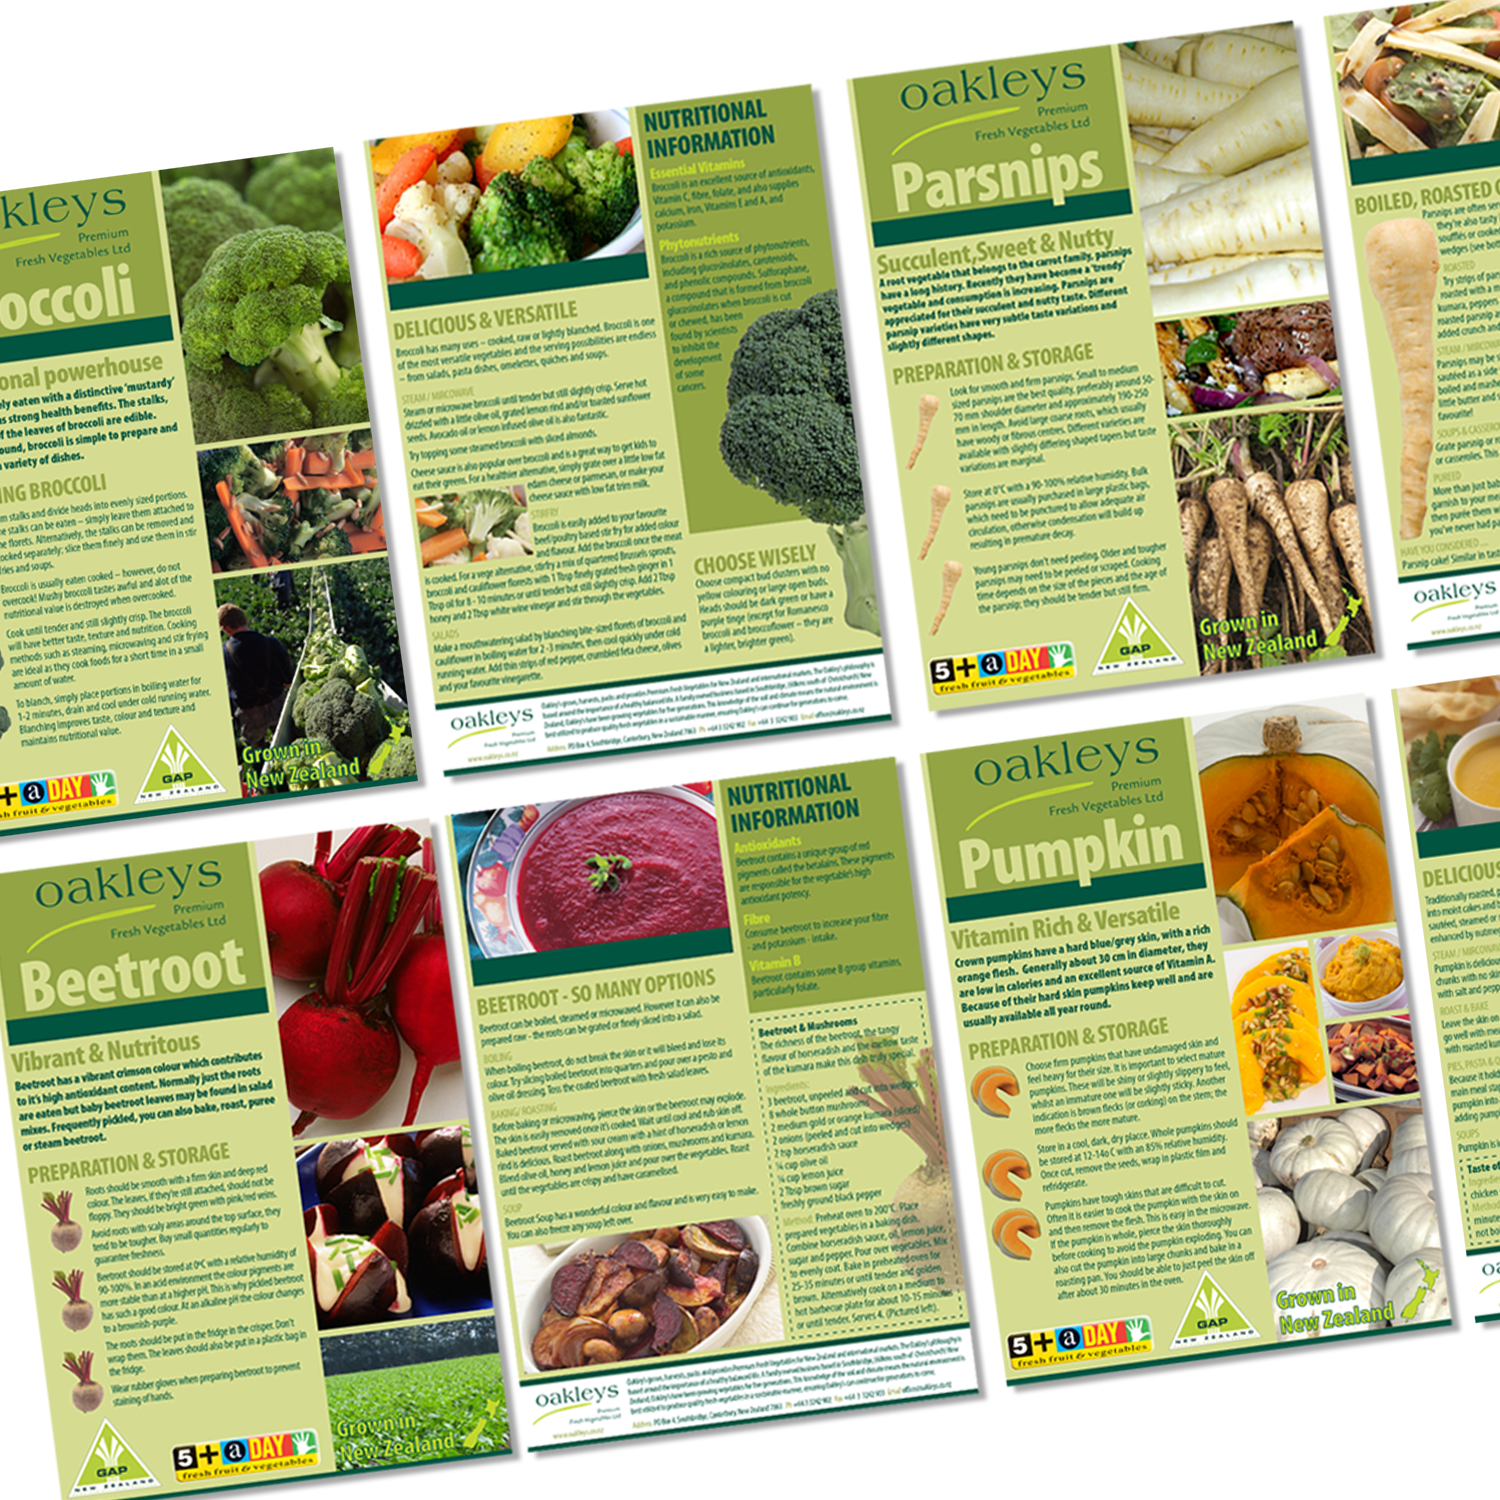 PRODUCT FLYERS DESIGNED FOR OAKLEYS PREMIUM FRESH VEGETABLES